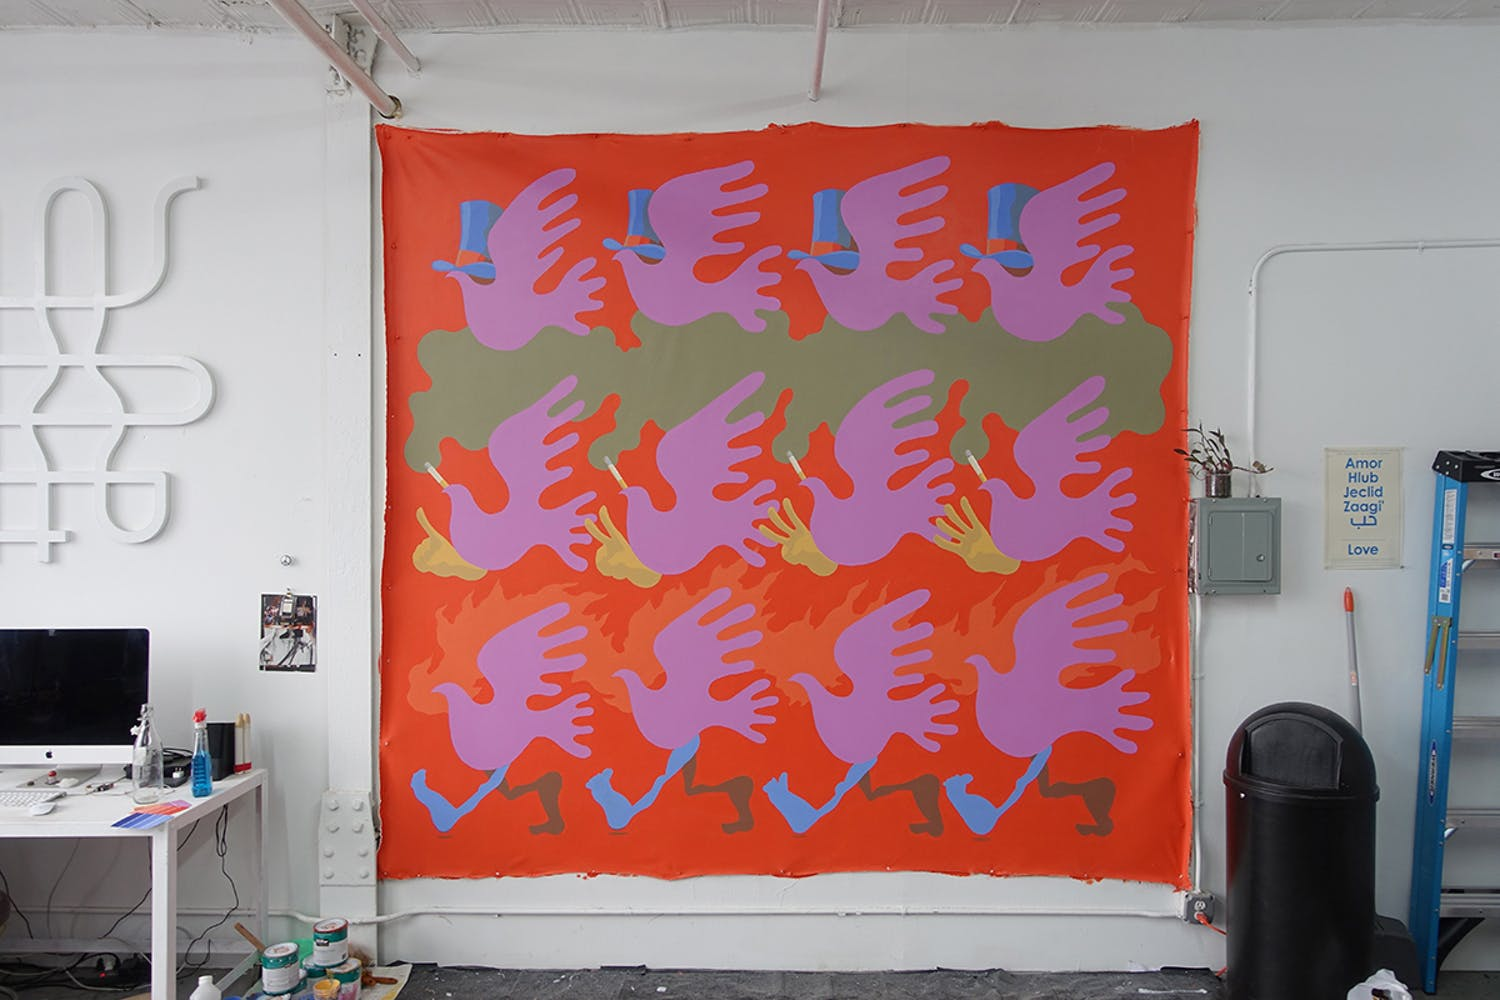 Painted canvas featuring repeated dove pattern in bright colors